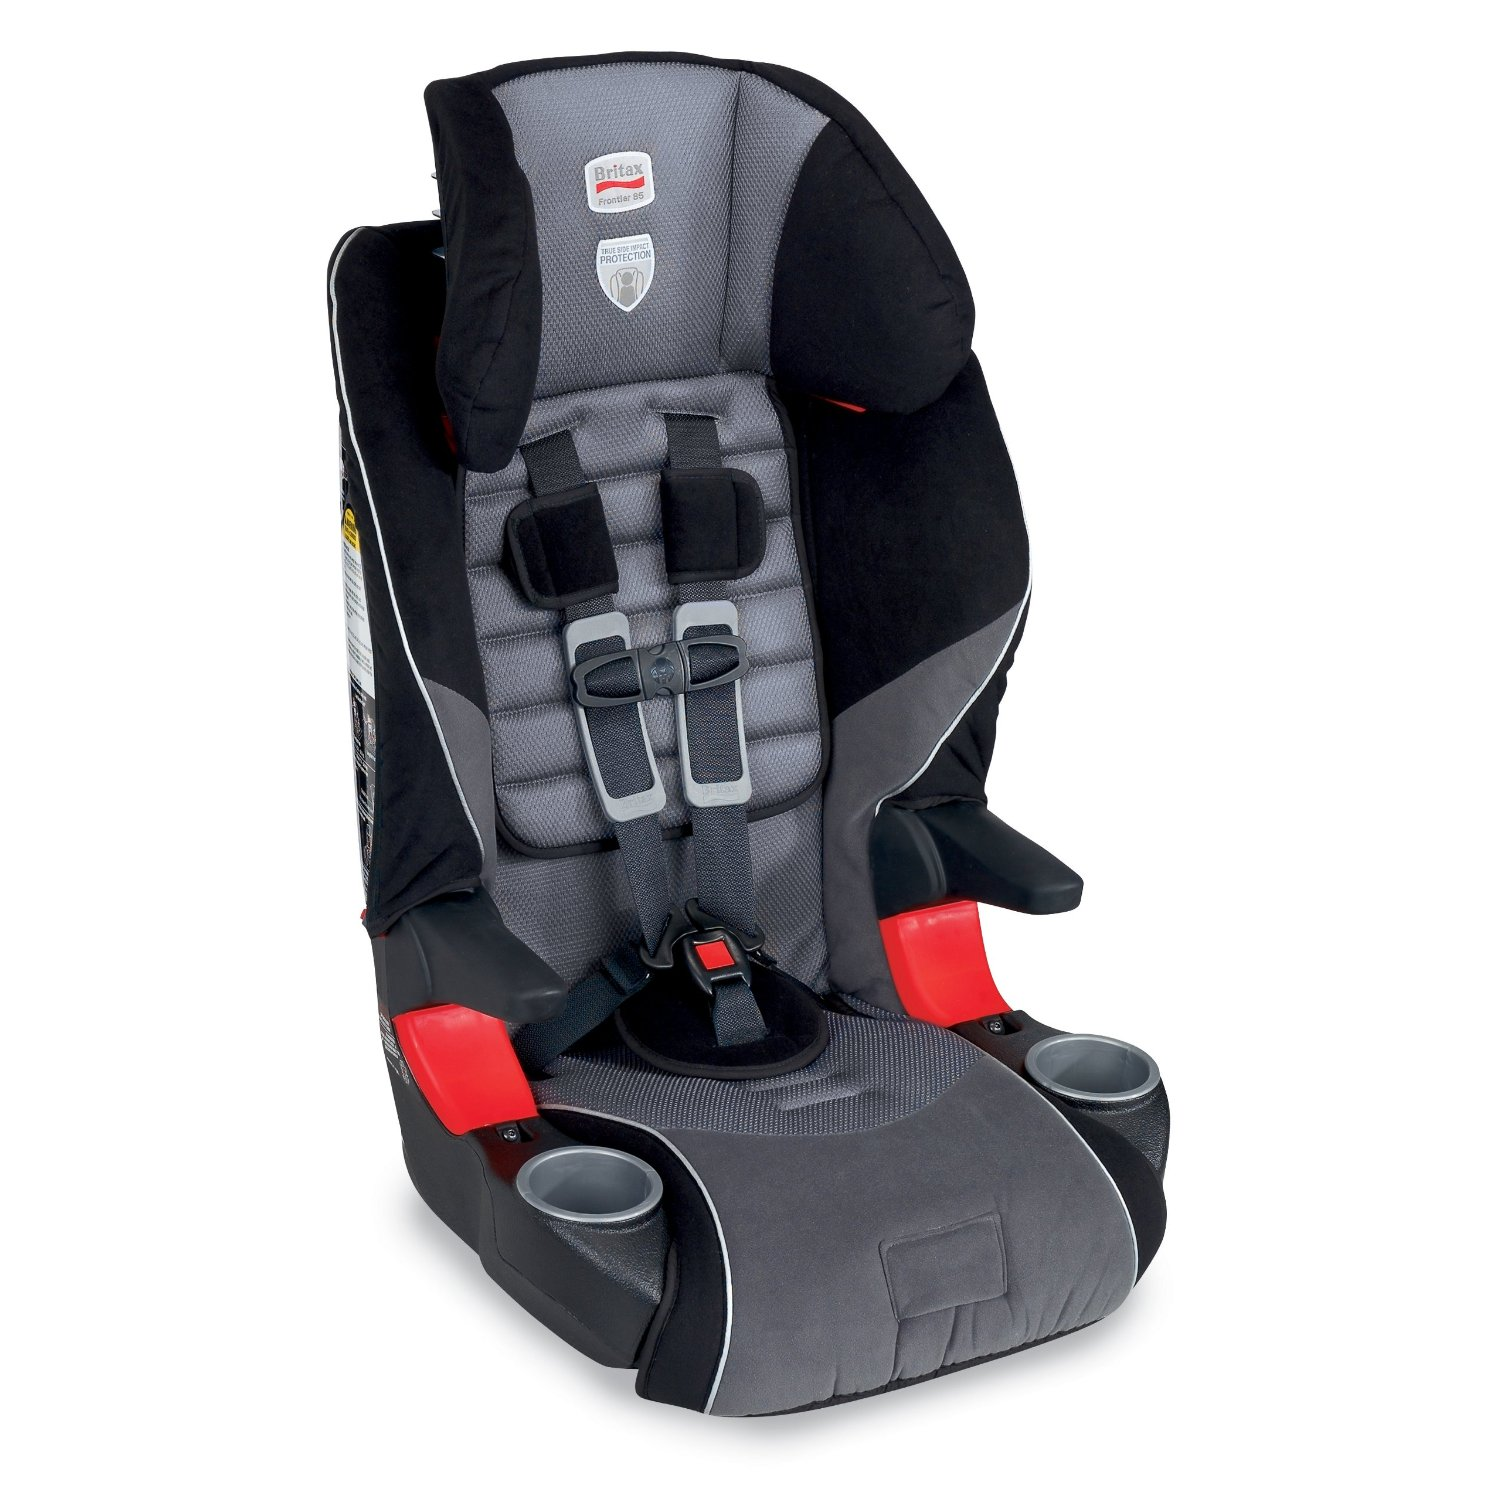 Booster Seats for School-Aged Children